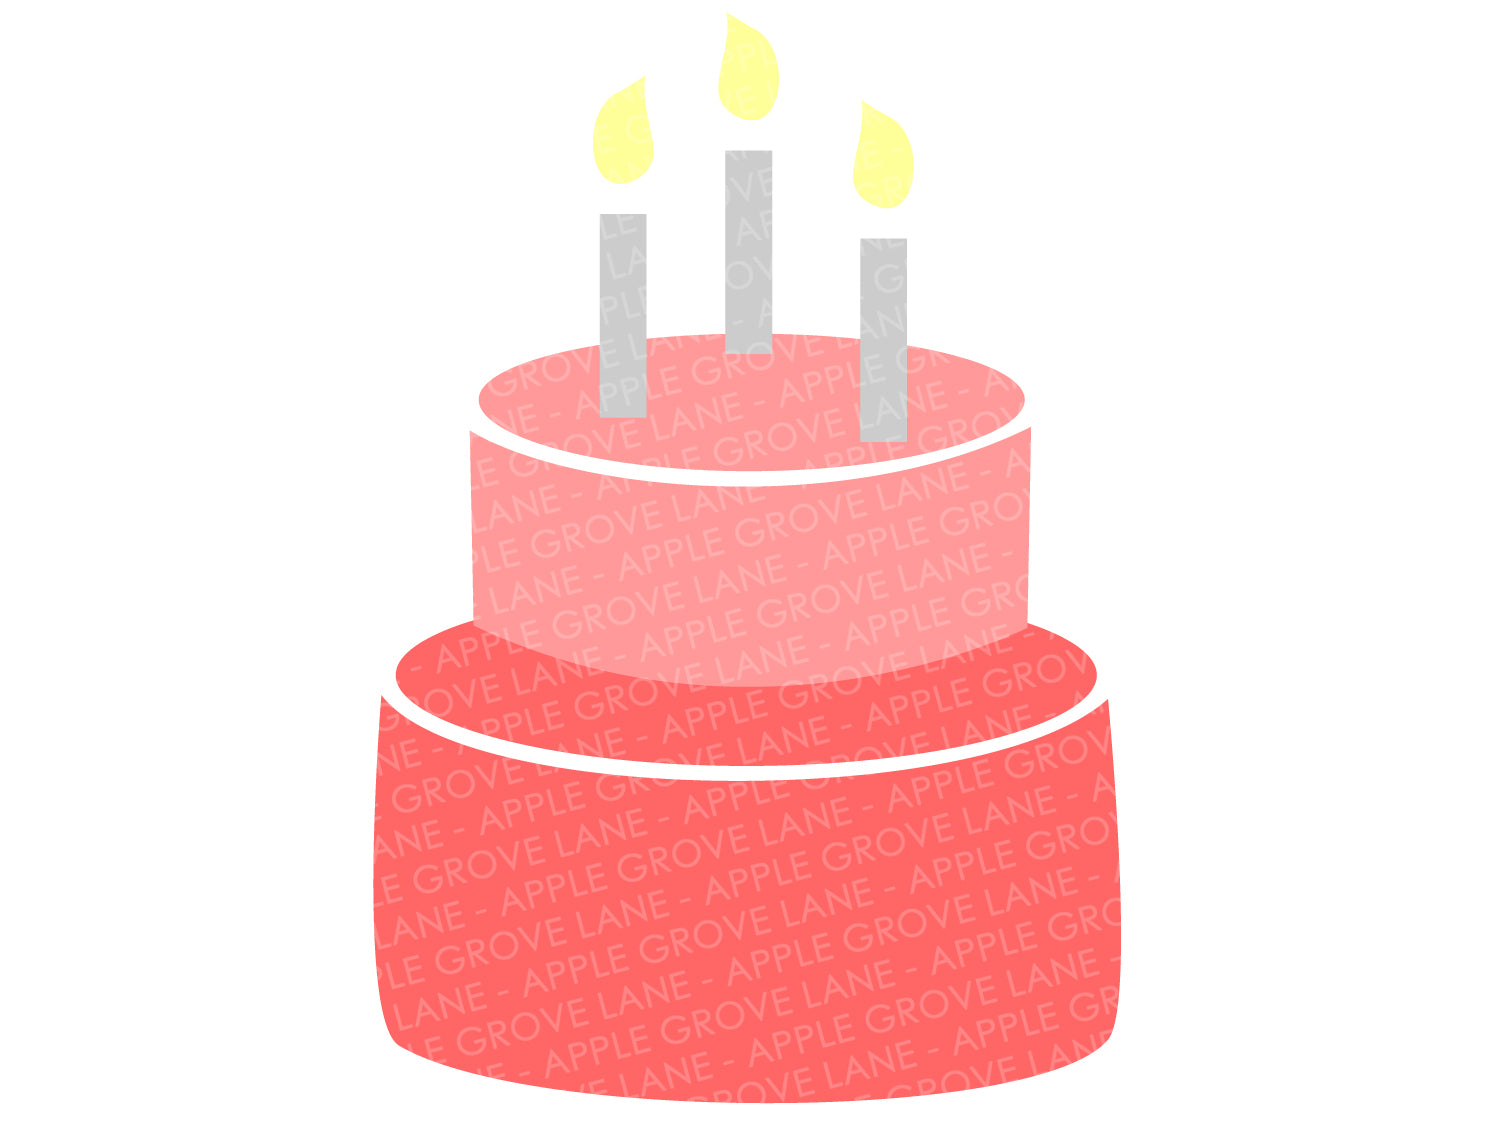 Birthday Cake Svg - Birthday Svg - Birthday Party Svg - Cake Svg - Birthday Candle Svg - Birthday Cake Clip Art - Svg Eps Png Dxf